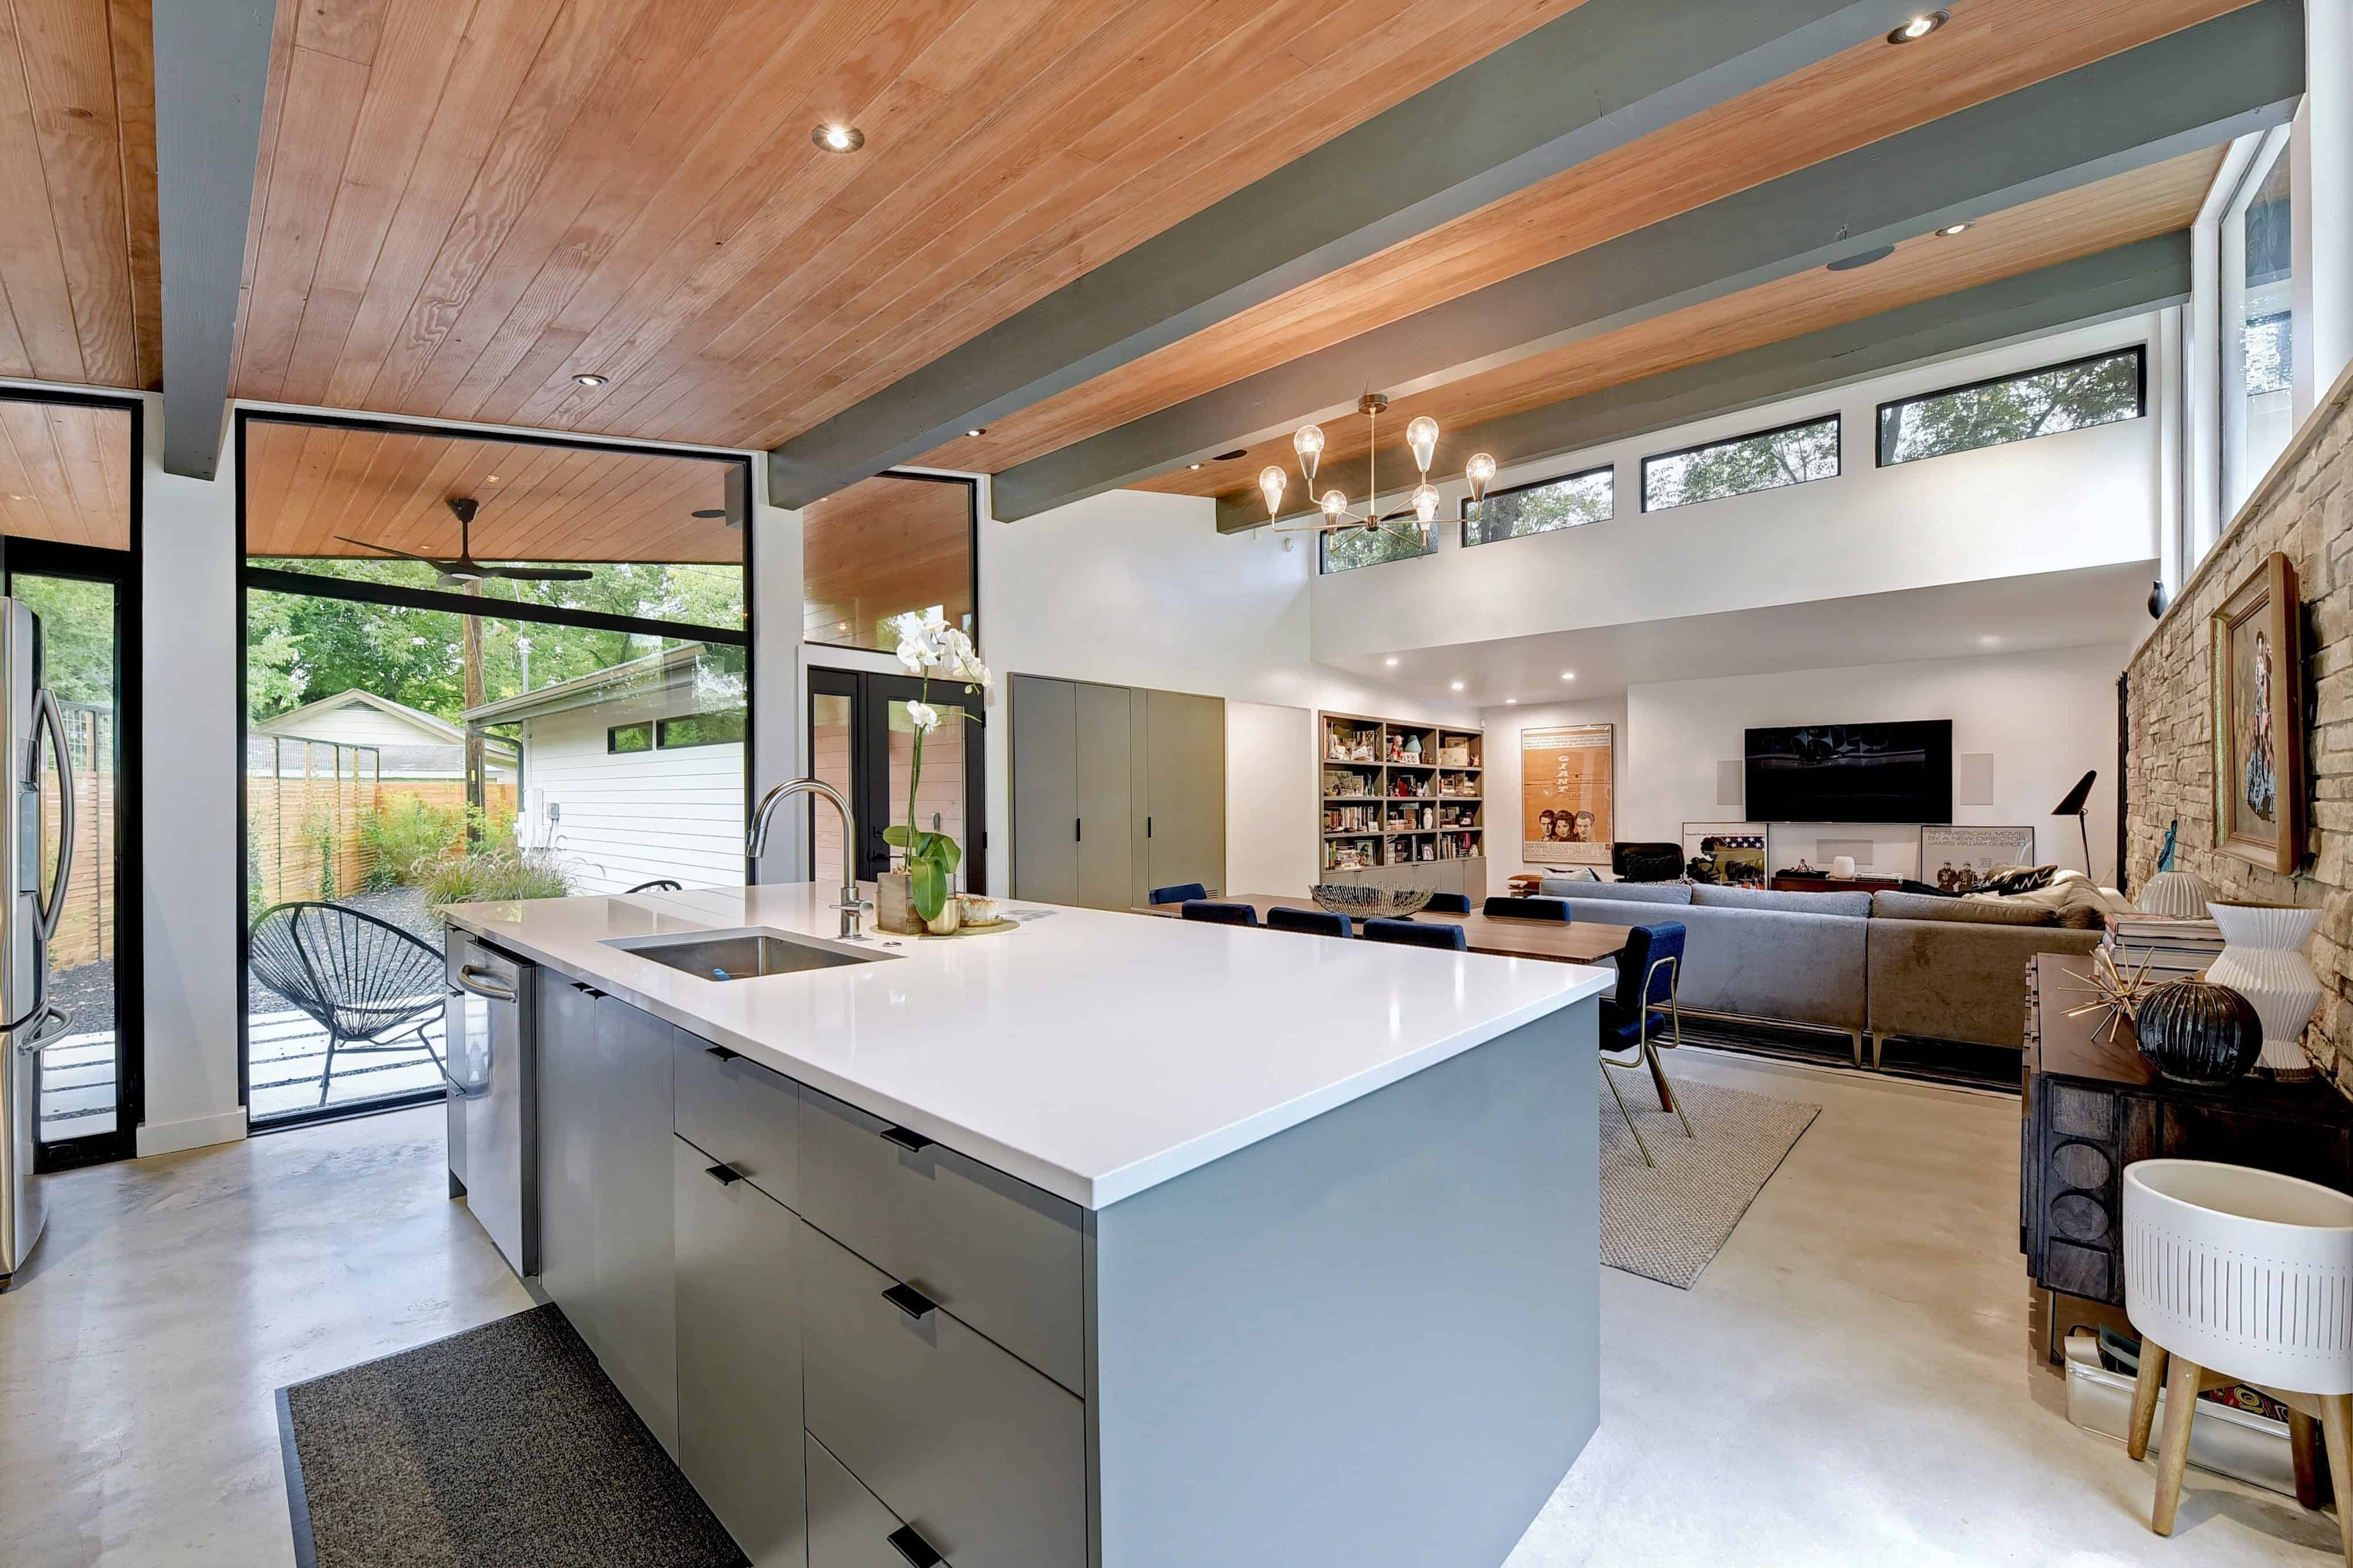 Kitchen, dining and living space in the Re-Open House designed by Matt Fajkus Architecture.